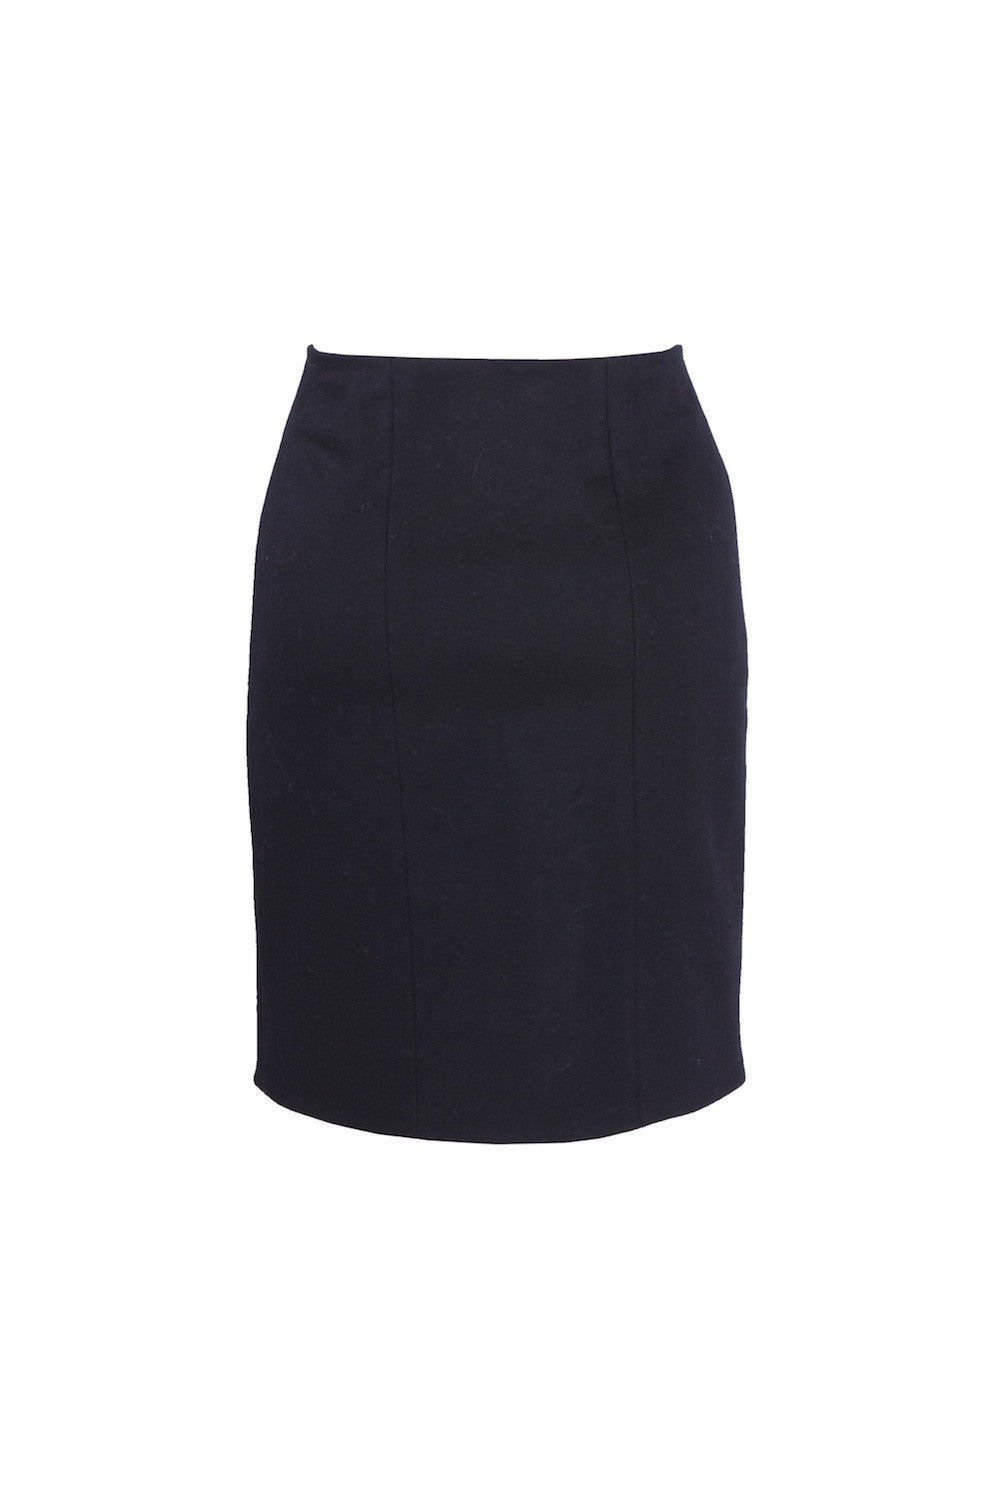 Phoebe Skirt - Womenswear Outlet - Madderson London